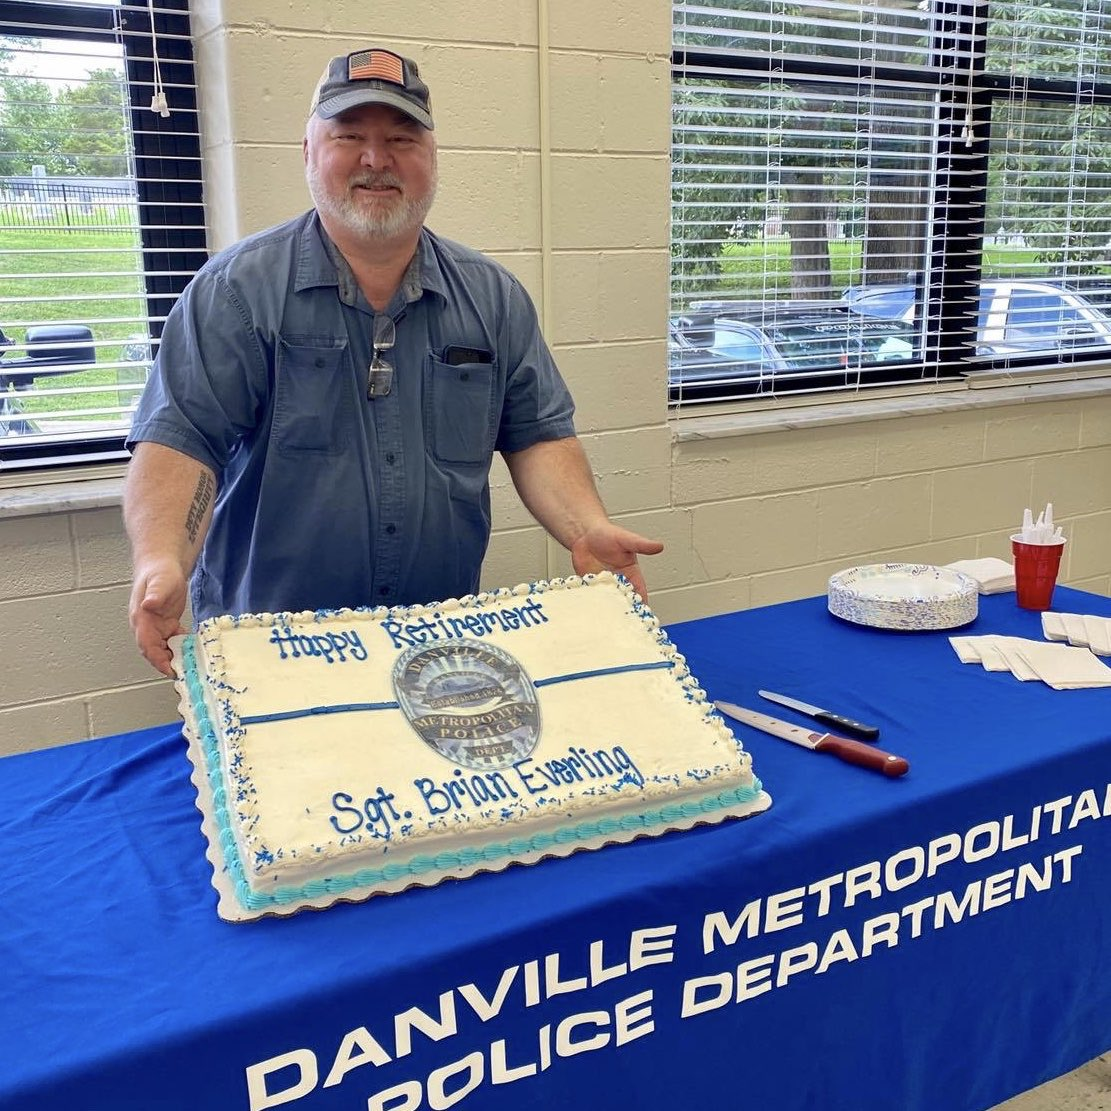 Danville police officer retires after nearly 40 years. @DanvilleMetroPD   Article: https://t.co/ovGhpfXxmM  #LEO #Retires #DanvilleIN #inHendricks https://t.co/sJ4sW8XlwK